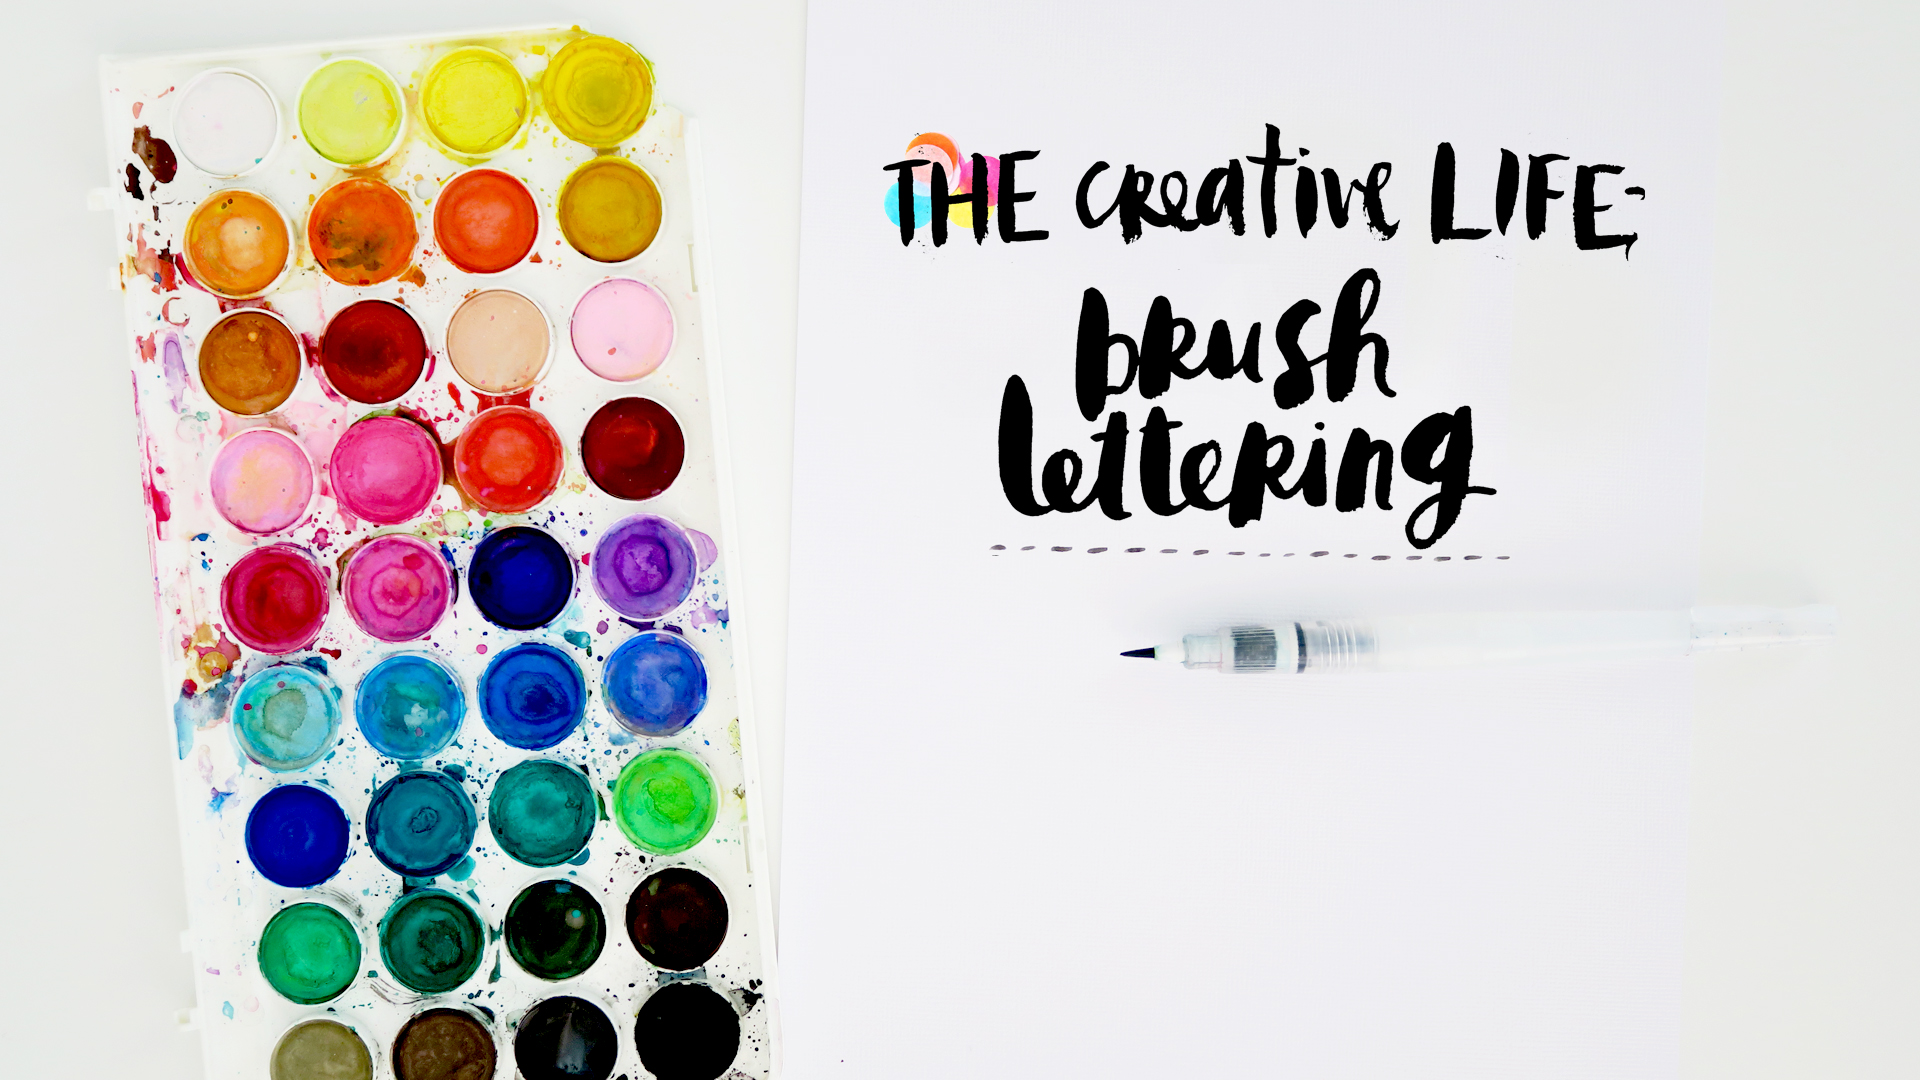 The Creative Life Brush Lettering